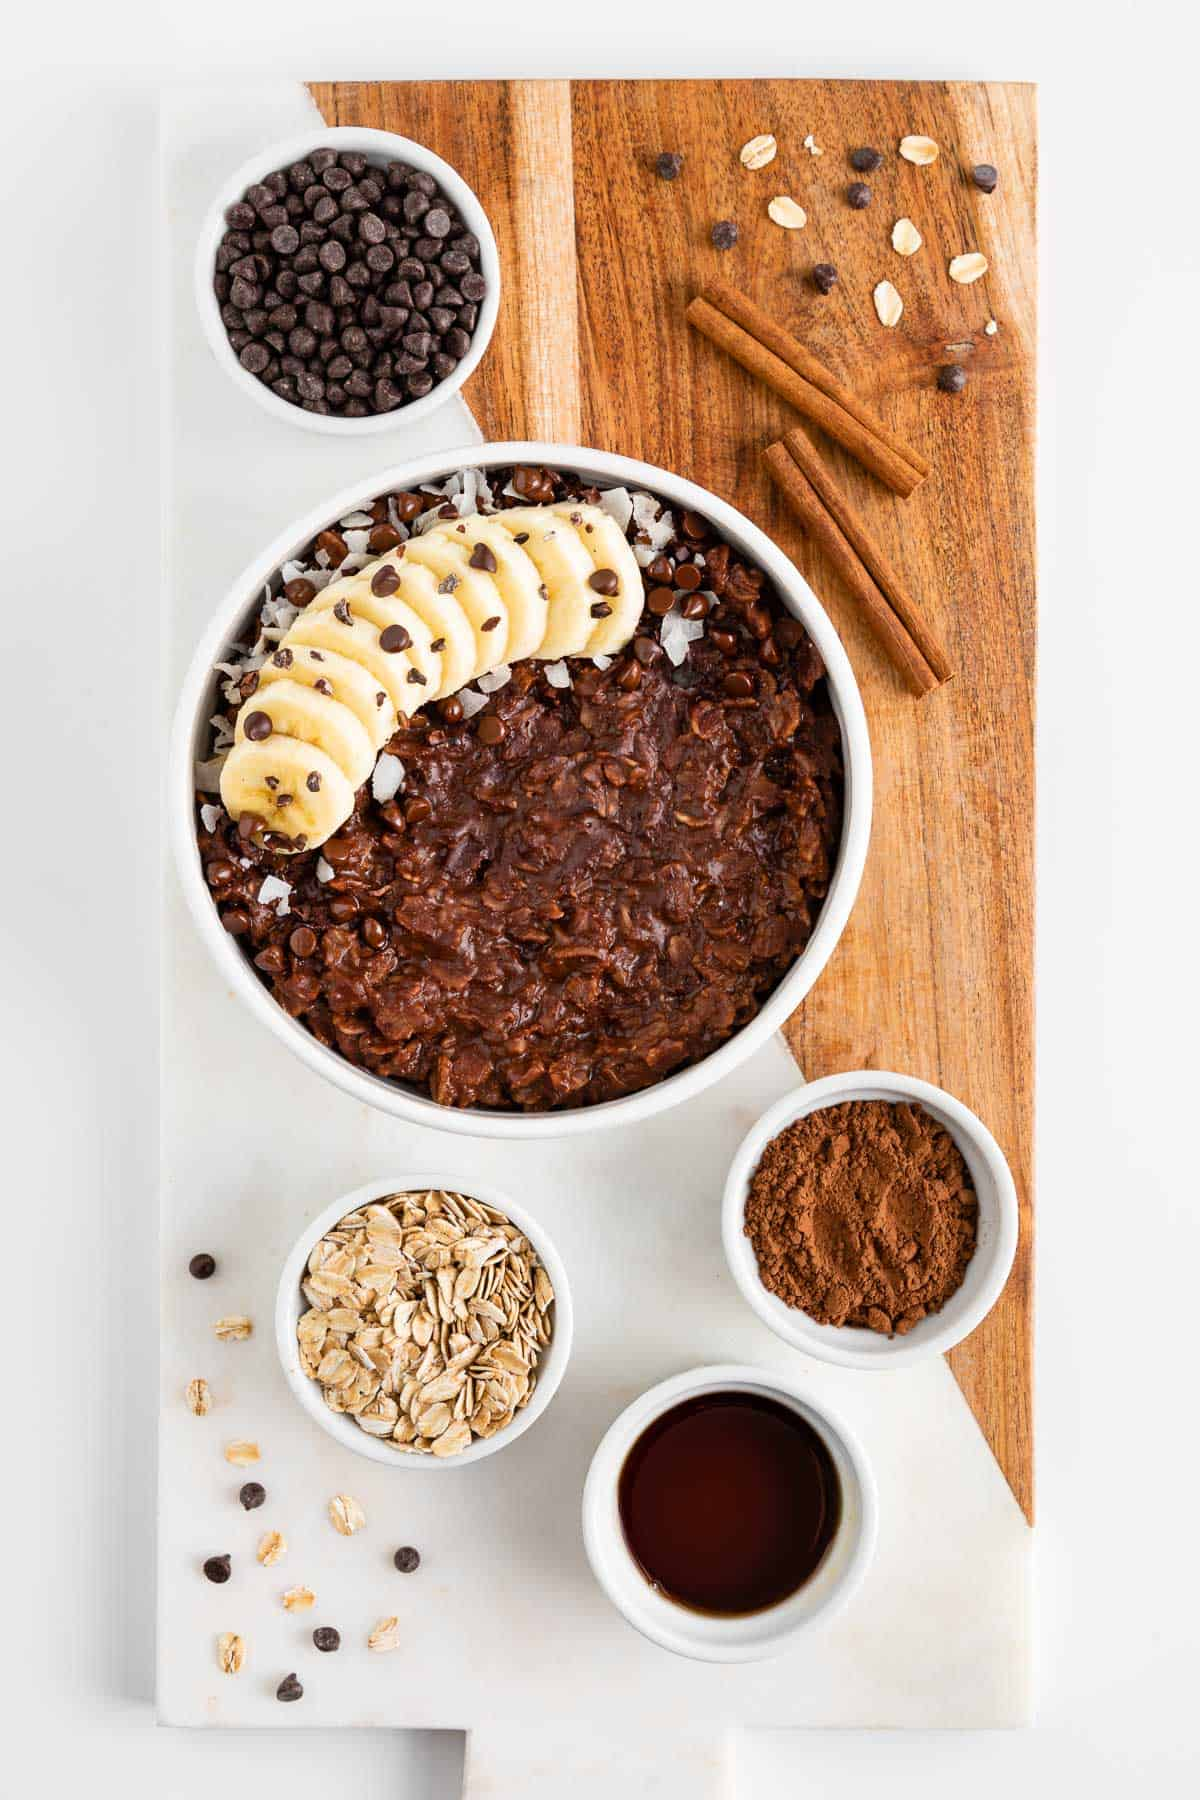 a marble and wood cutting board topped with vegan chocolate oatmeal and small bowls filled with the ingredients